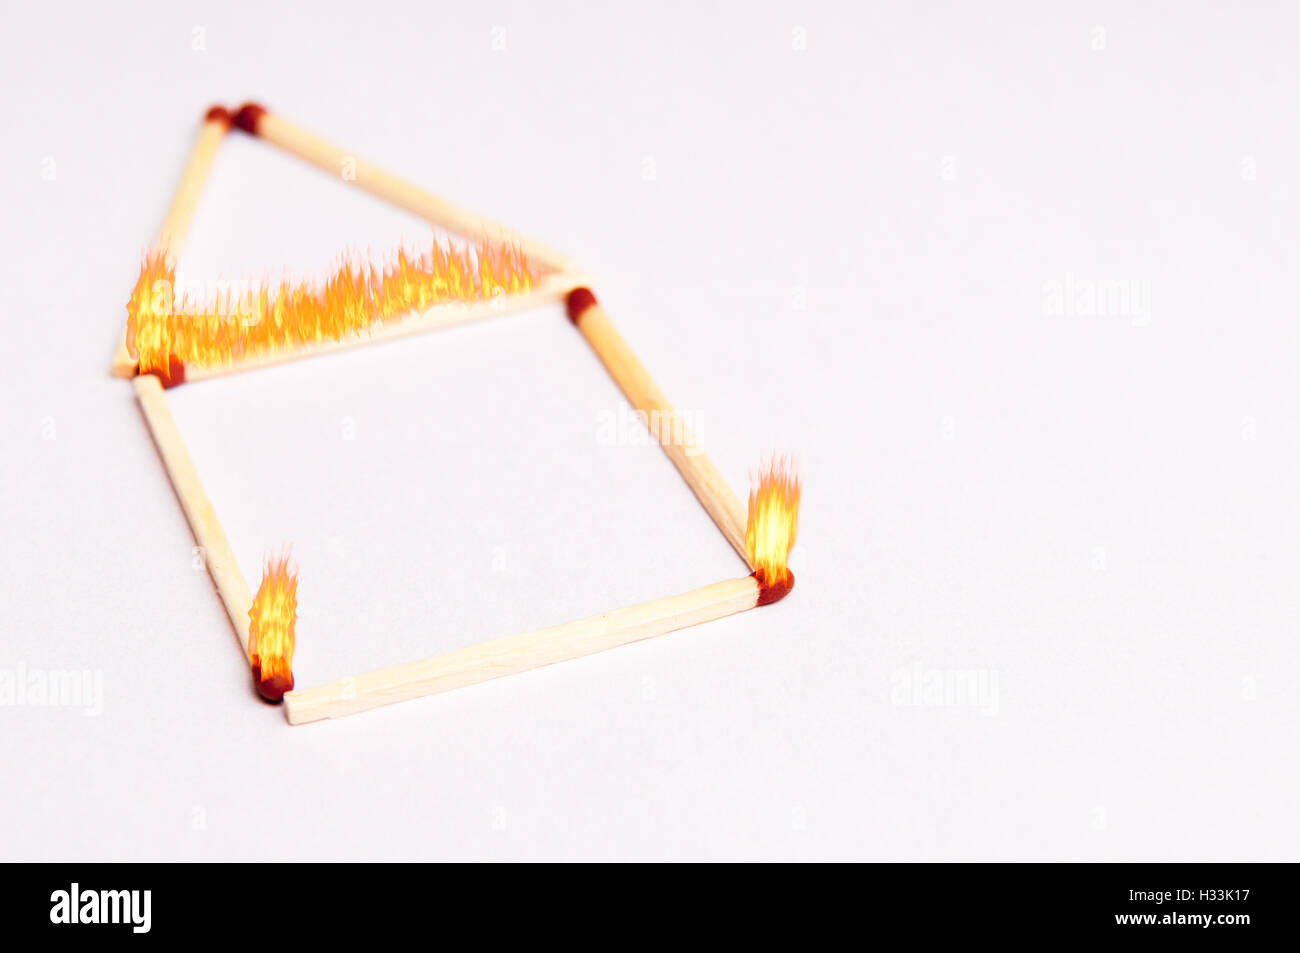 fire safety background concept with matches on fire in the shape of a home - Stock Image